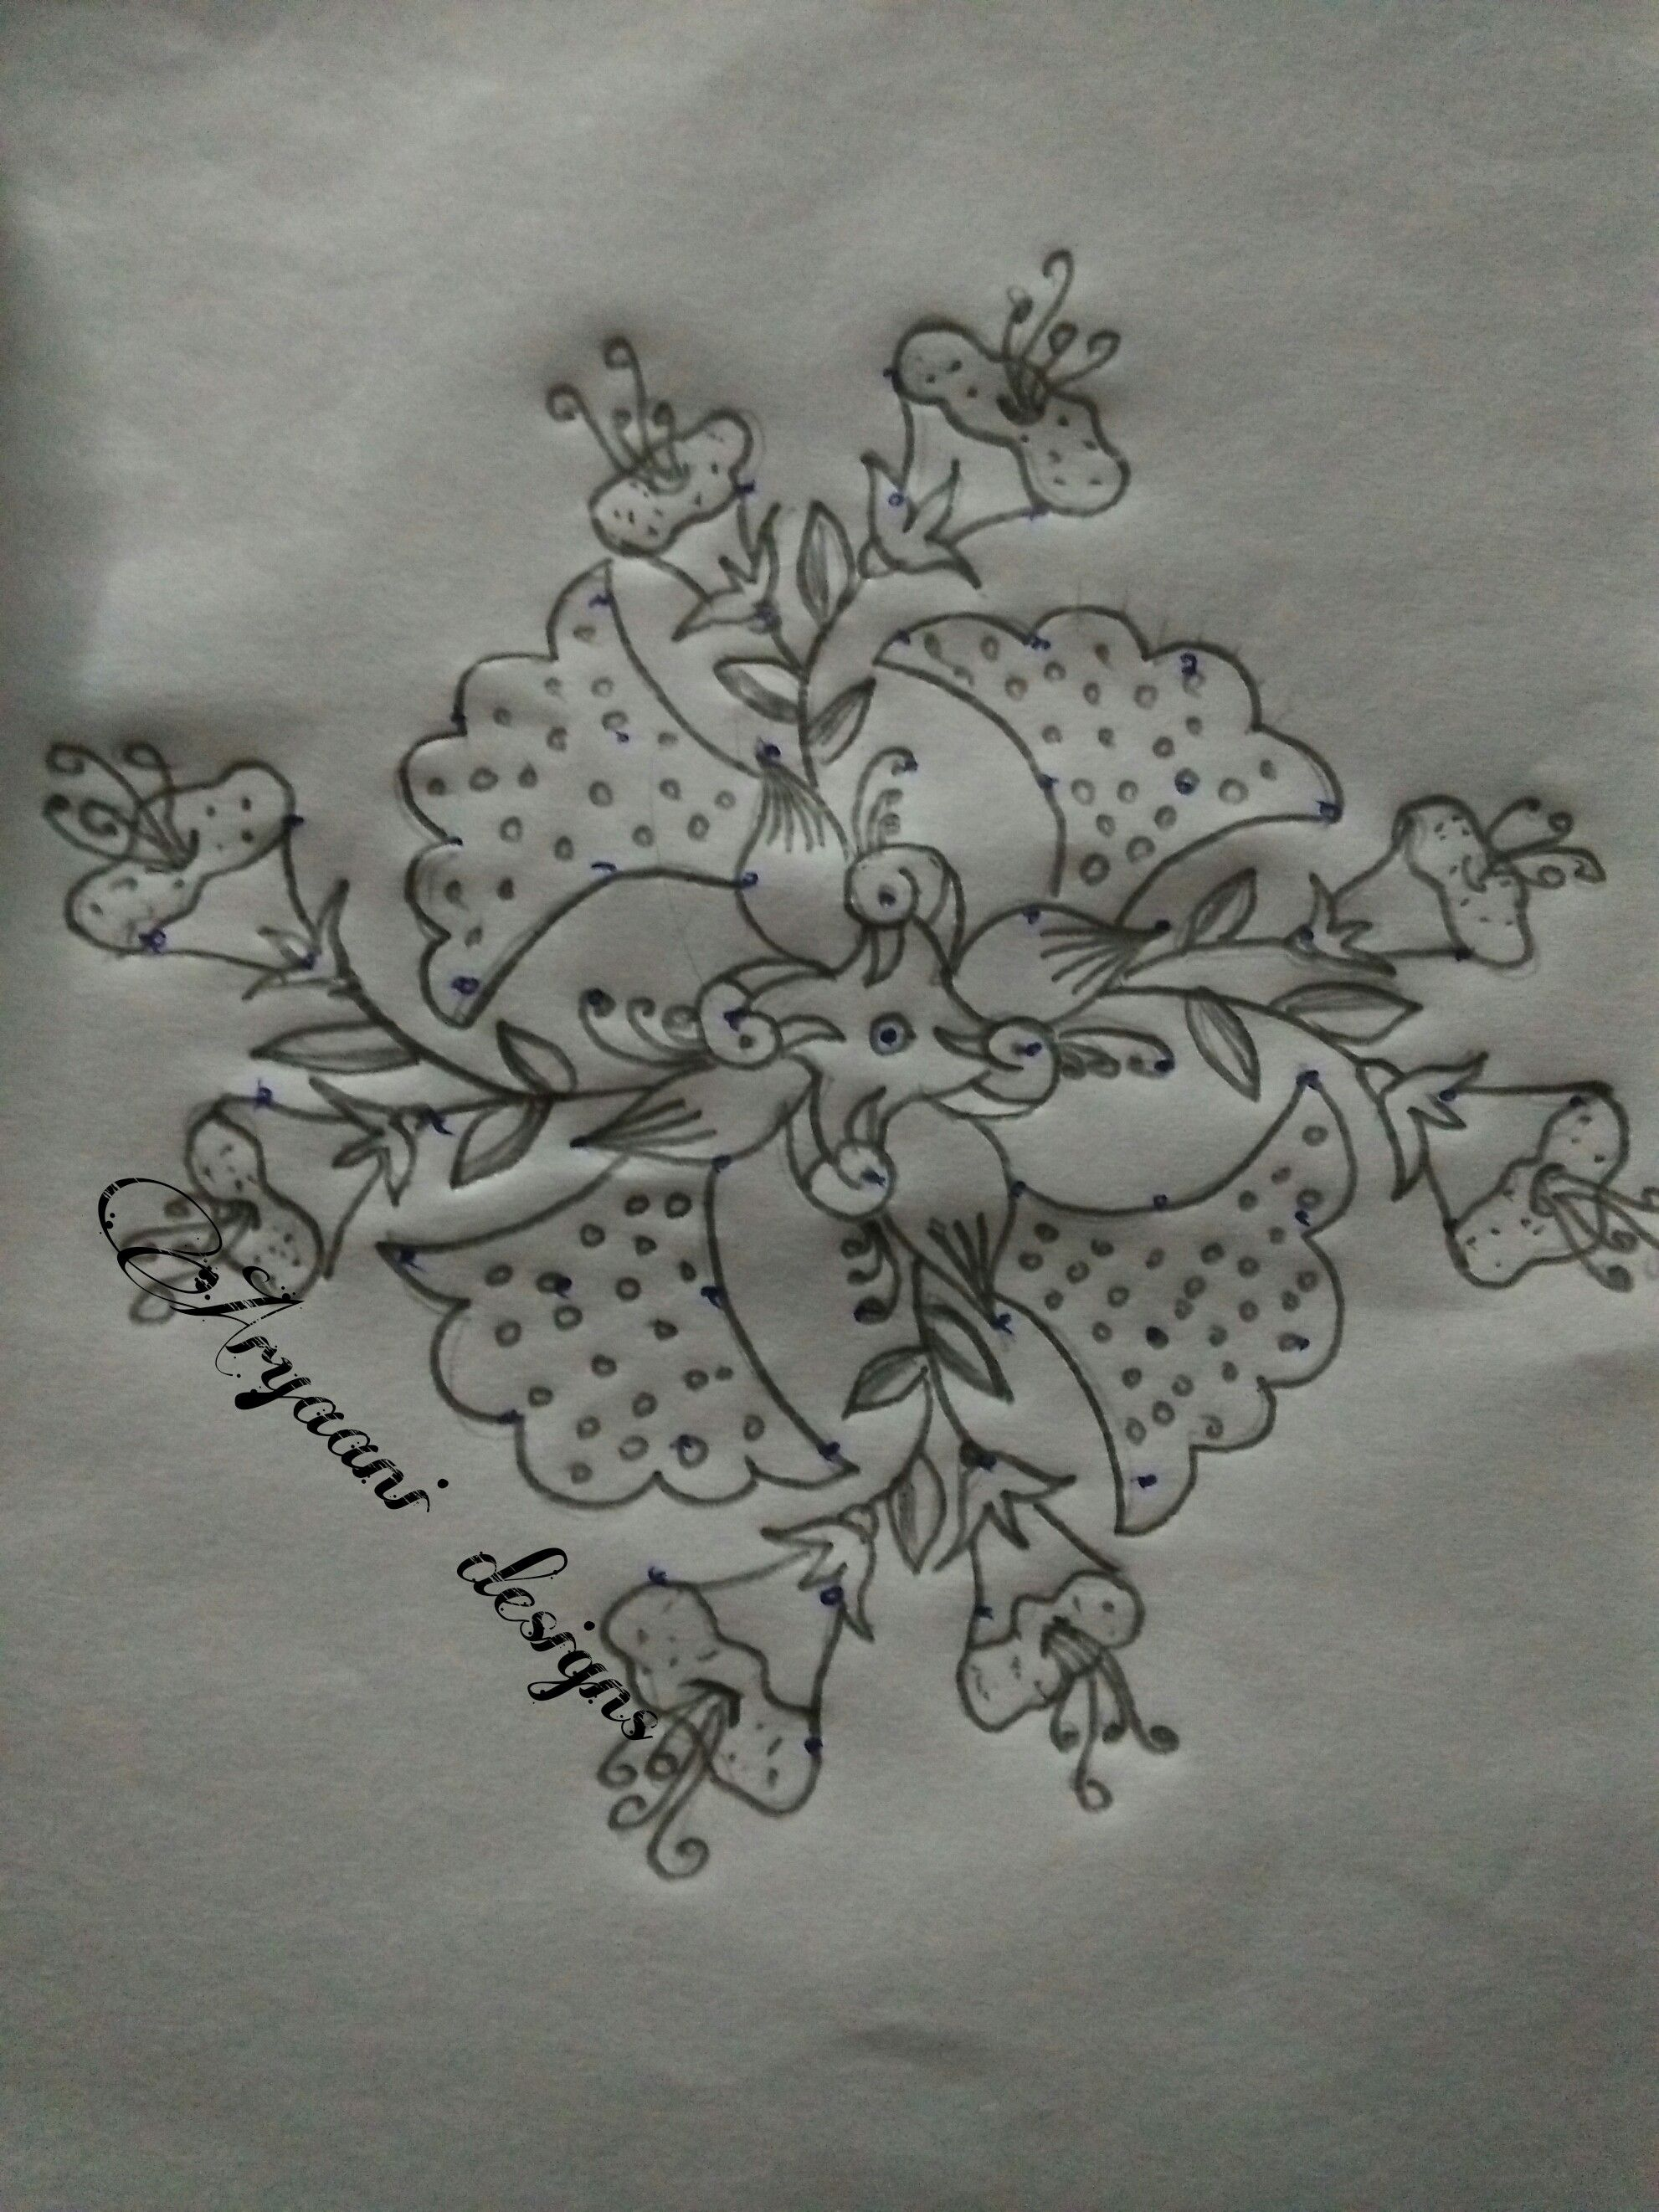 Kolam designs beautiful rangoli designs abstract drawings pencil drawings art drawings